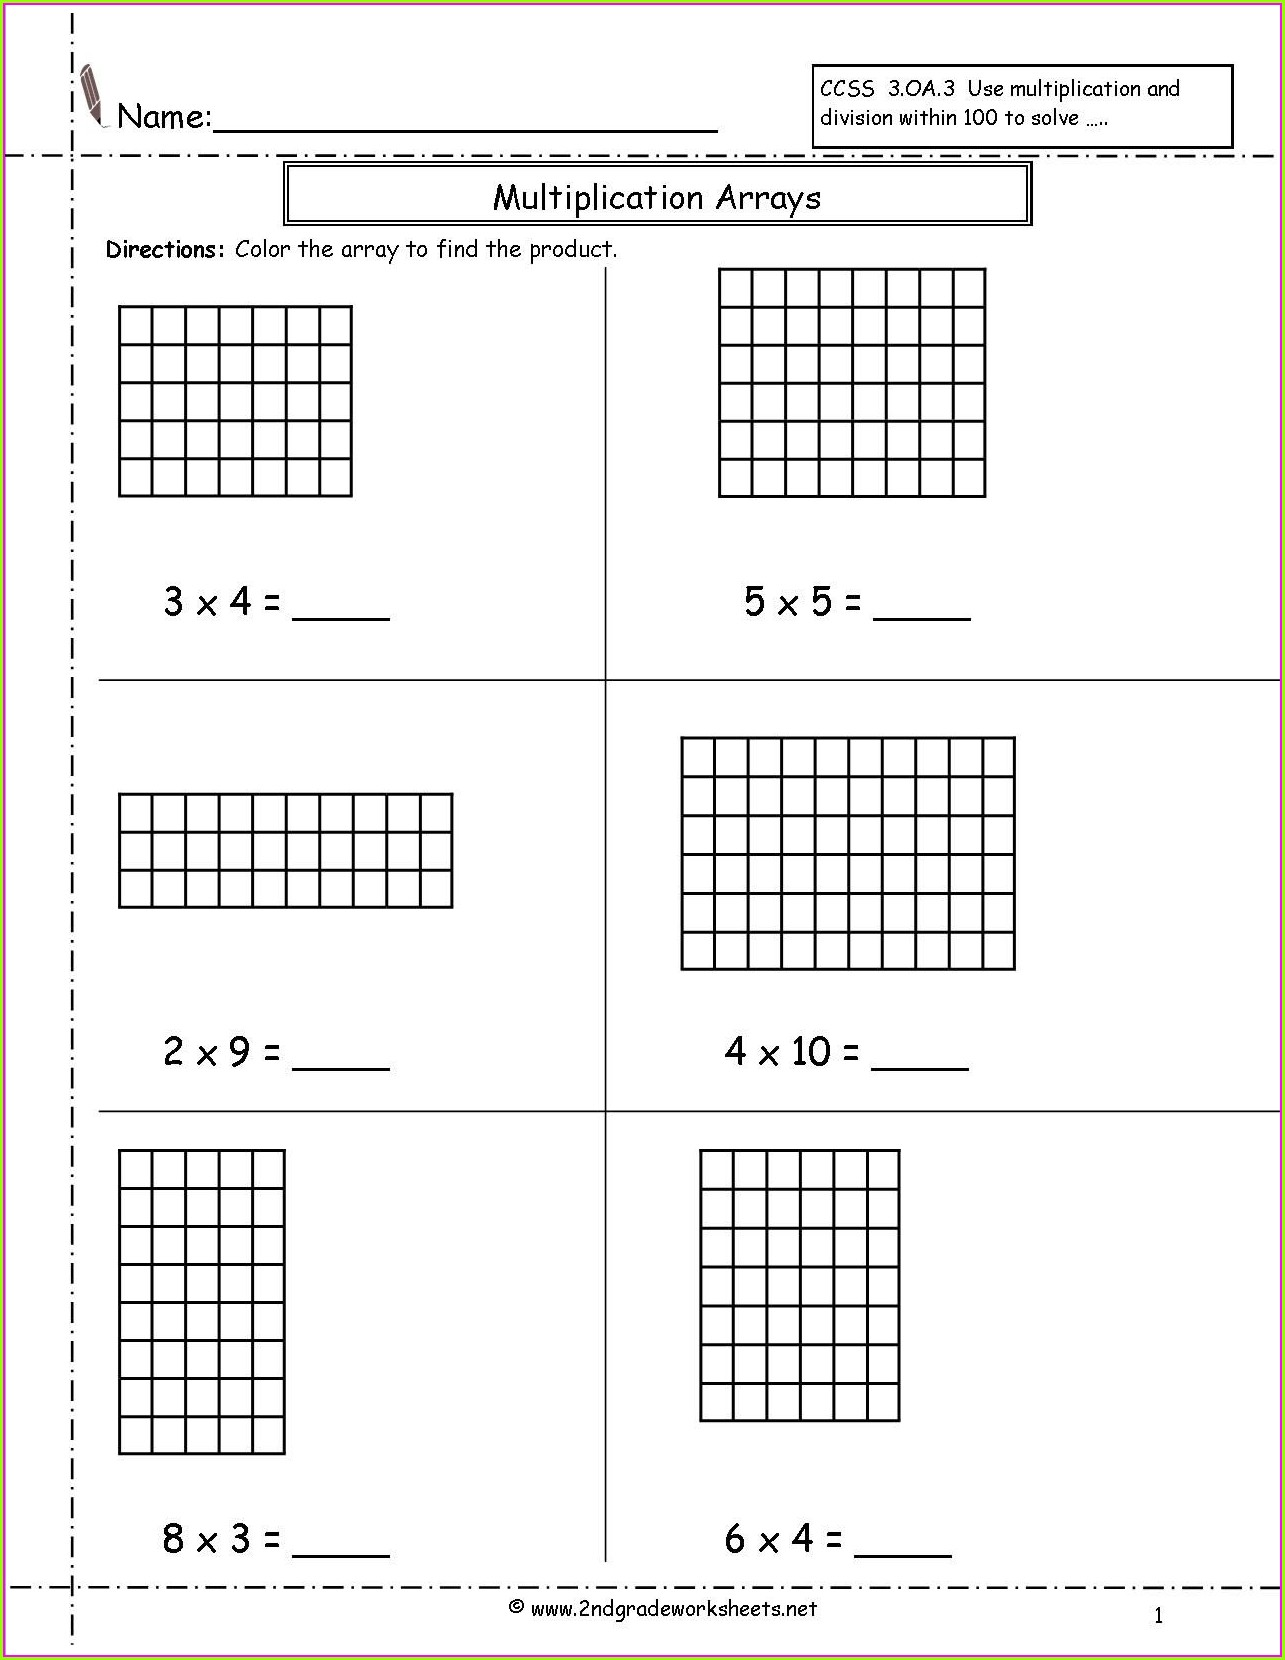 Multiplication Arrays Worksheet Year 3